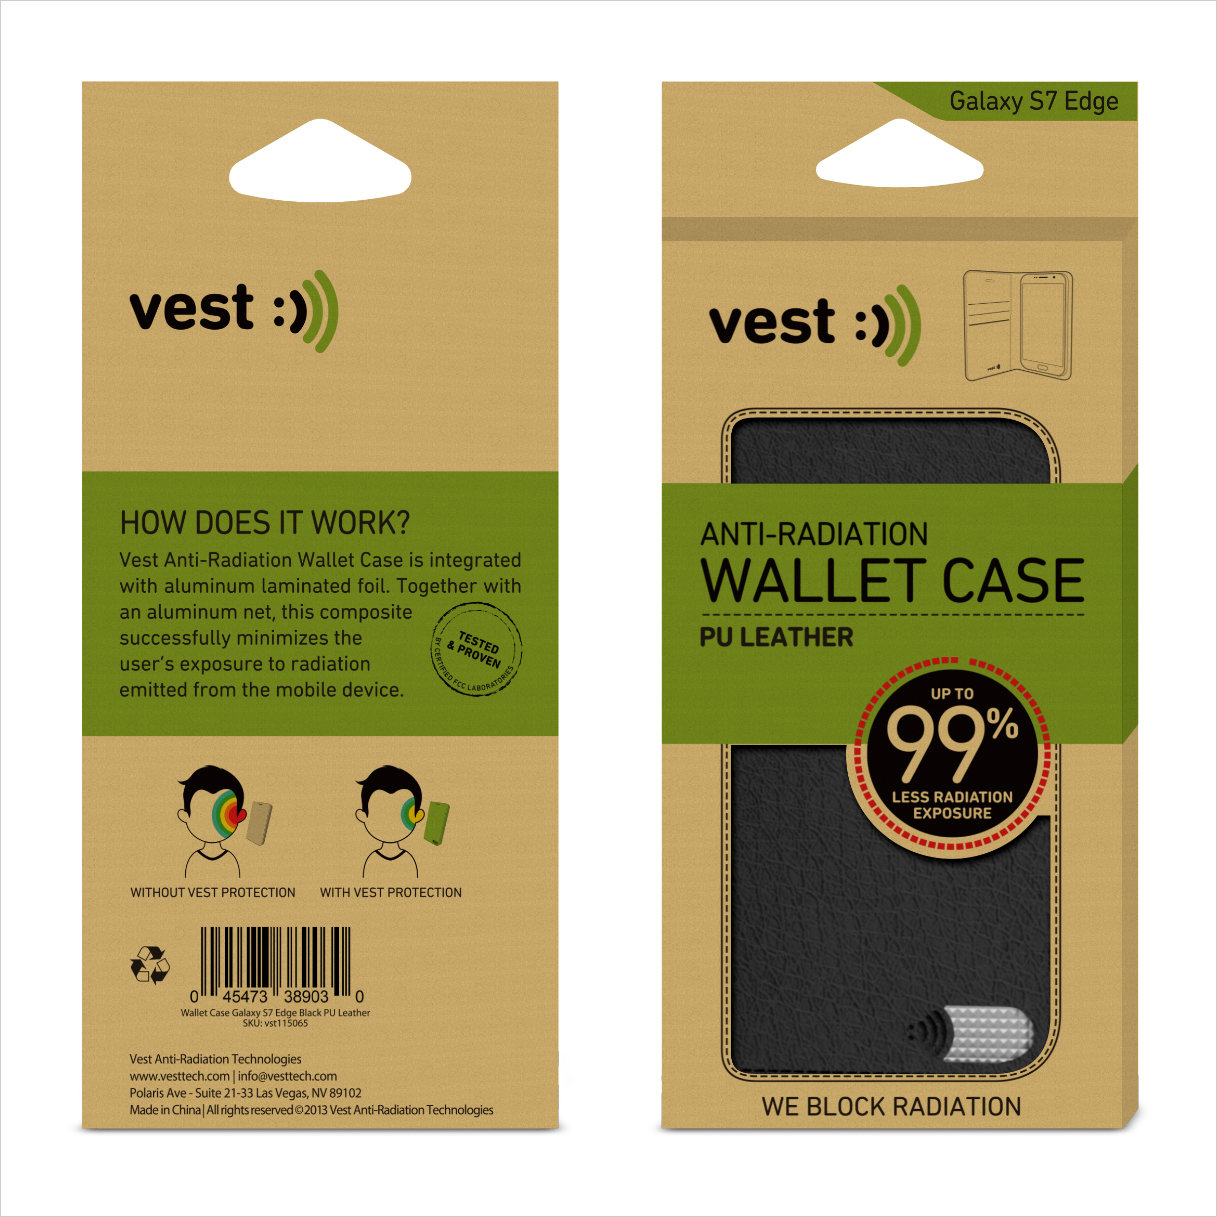 vest Anti-Radiation Wallet Case for Galaxy S7 Edge